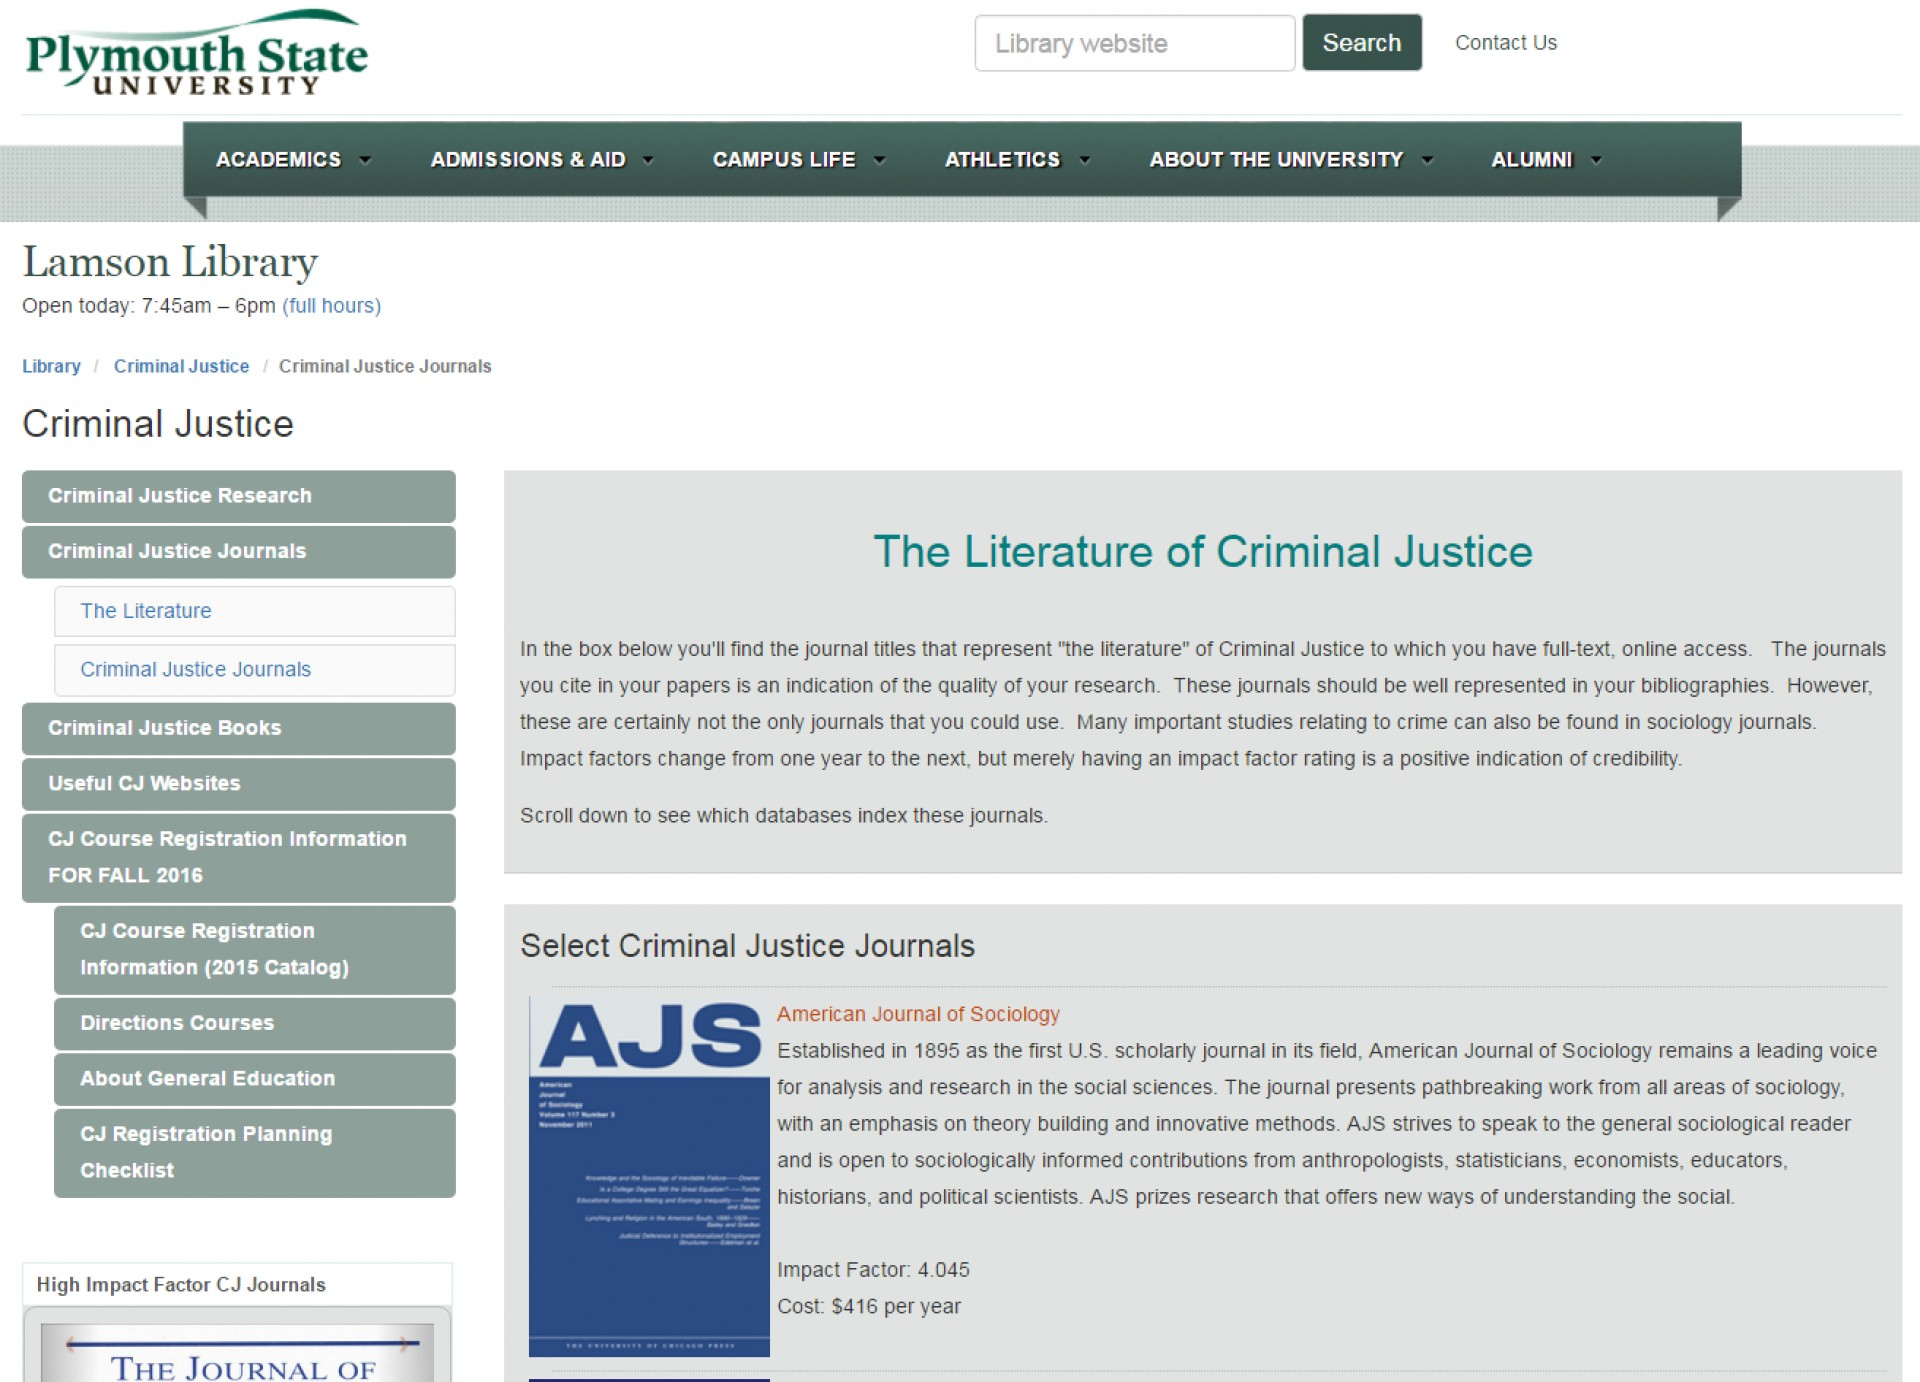 019 Cj Guide Journals Png Criminal Justice Essay Topics Unique Canadian Compare And Contrast Youth Act 1920